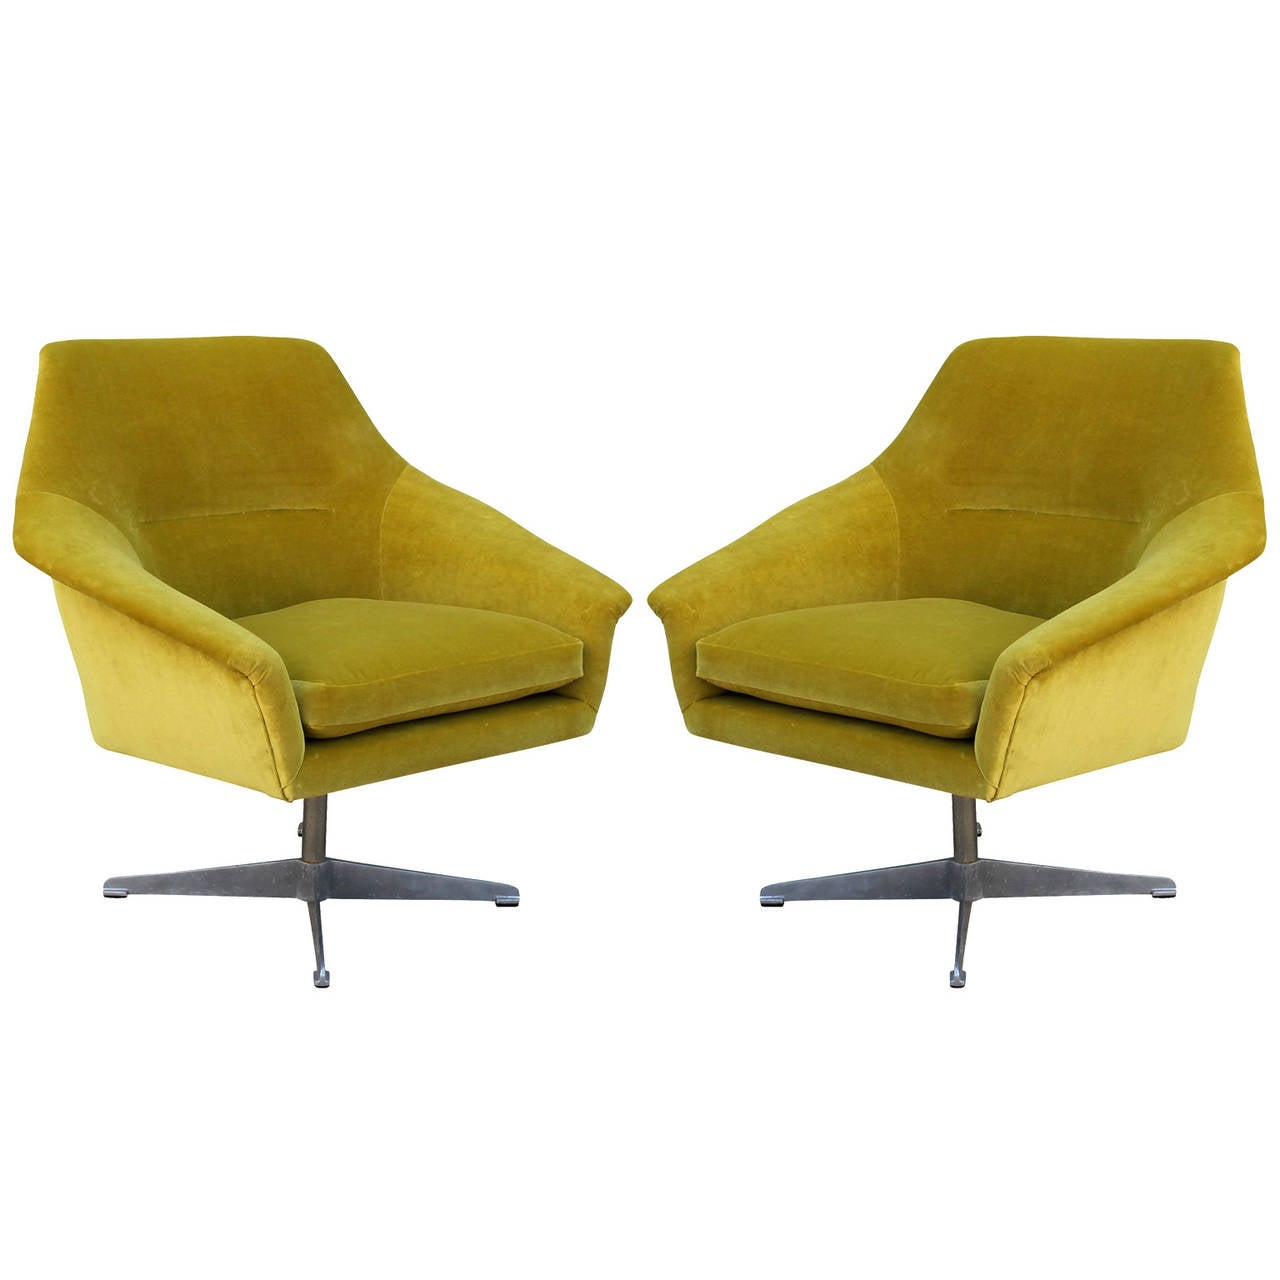 green velvet swivel chair exercise ball pair of swedish chairs at 1stdibs